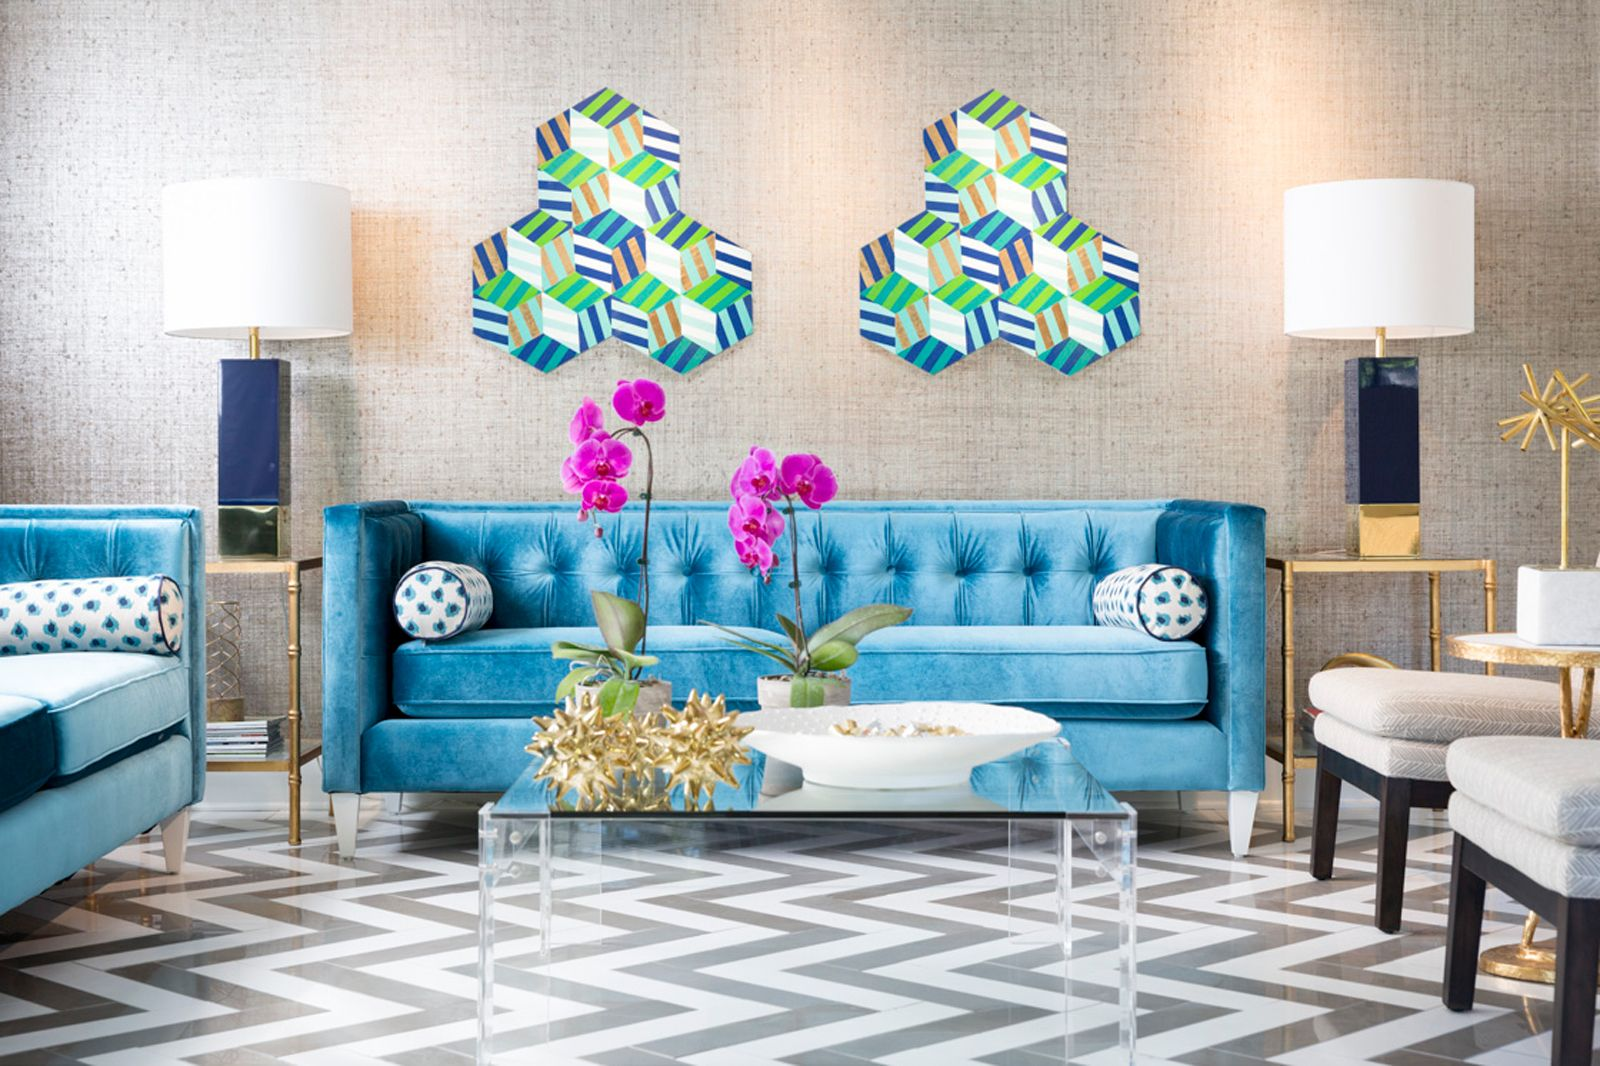 For a Different twist on Blue & Green:Turquoise,green & gray come together to create interest and breathe life into a room.